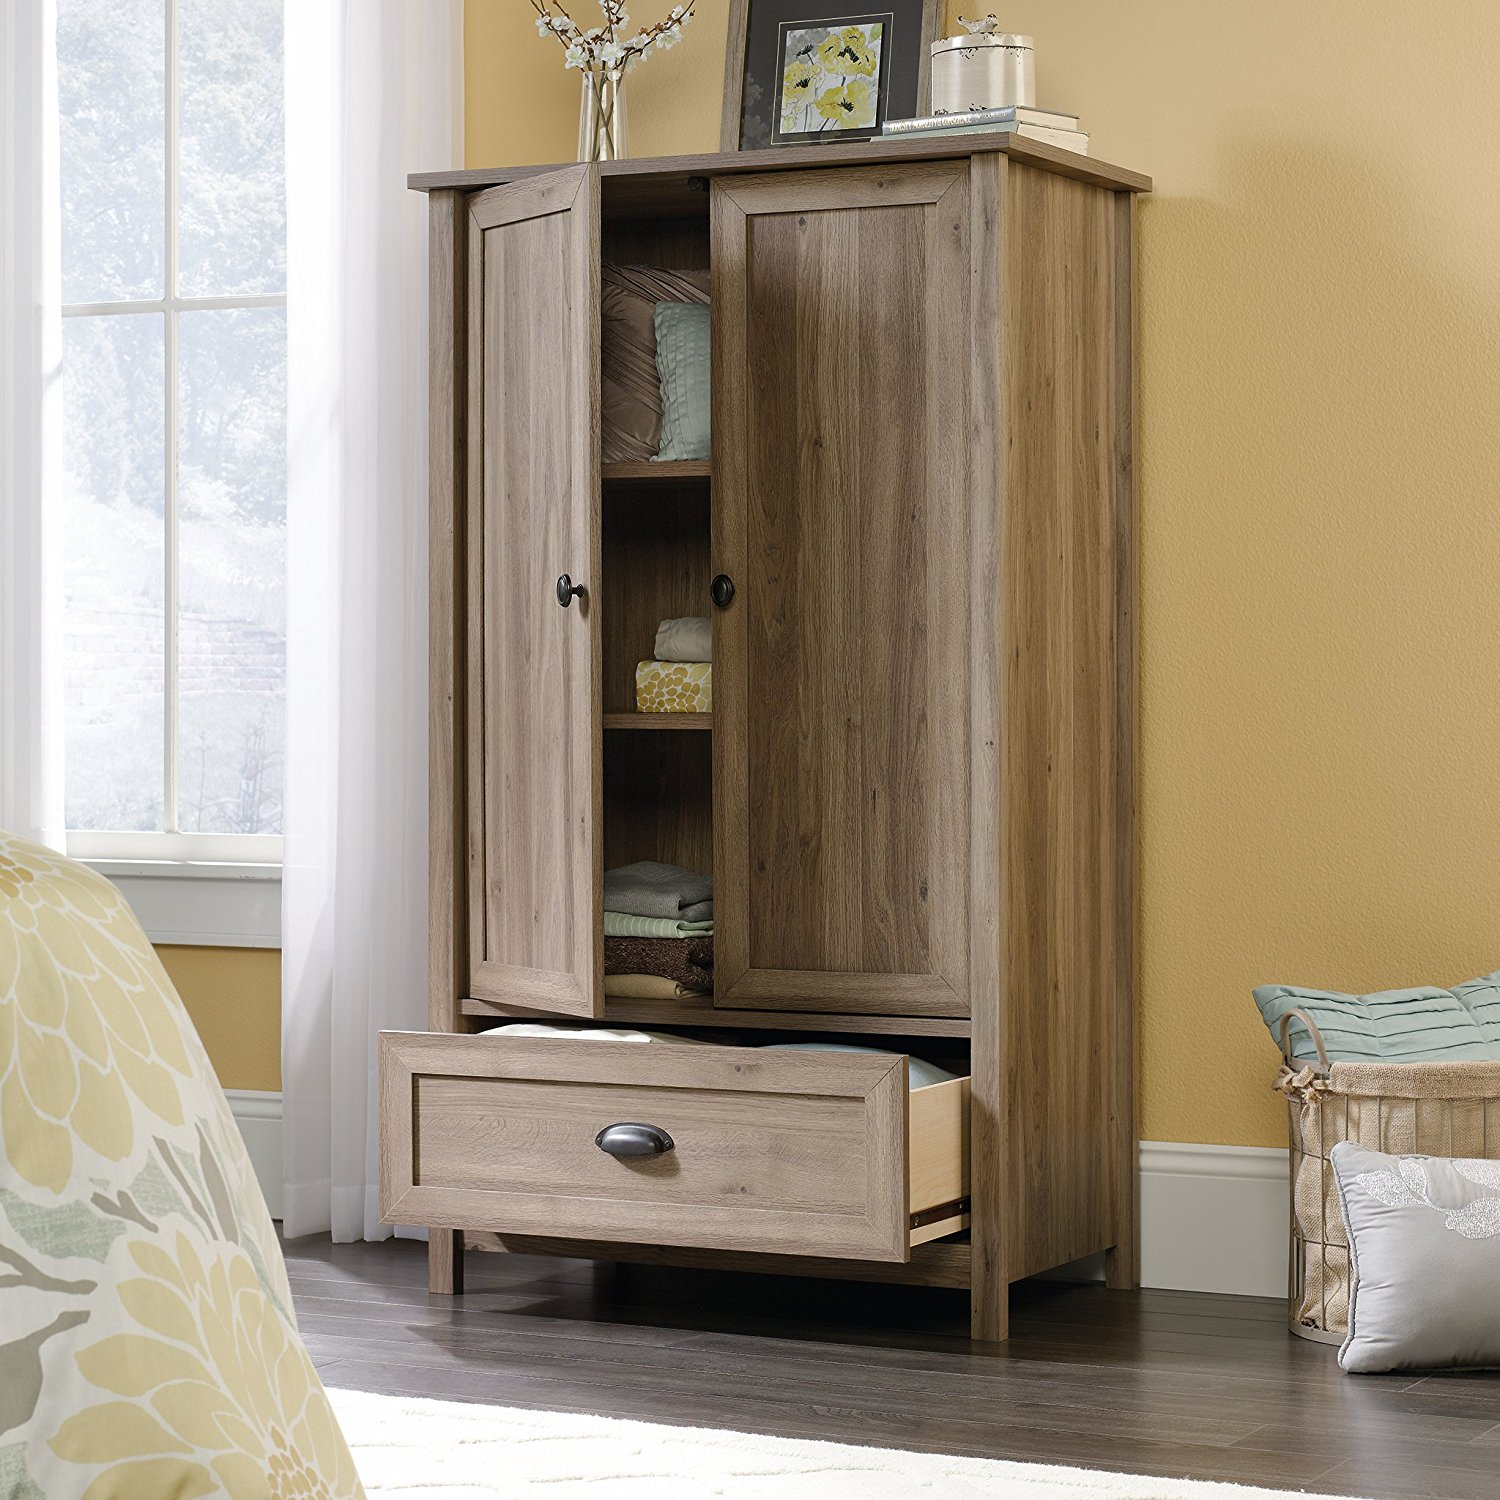 Etonnant Sauder 419458 Bedroom Armoire (Salt Oak)